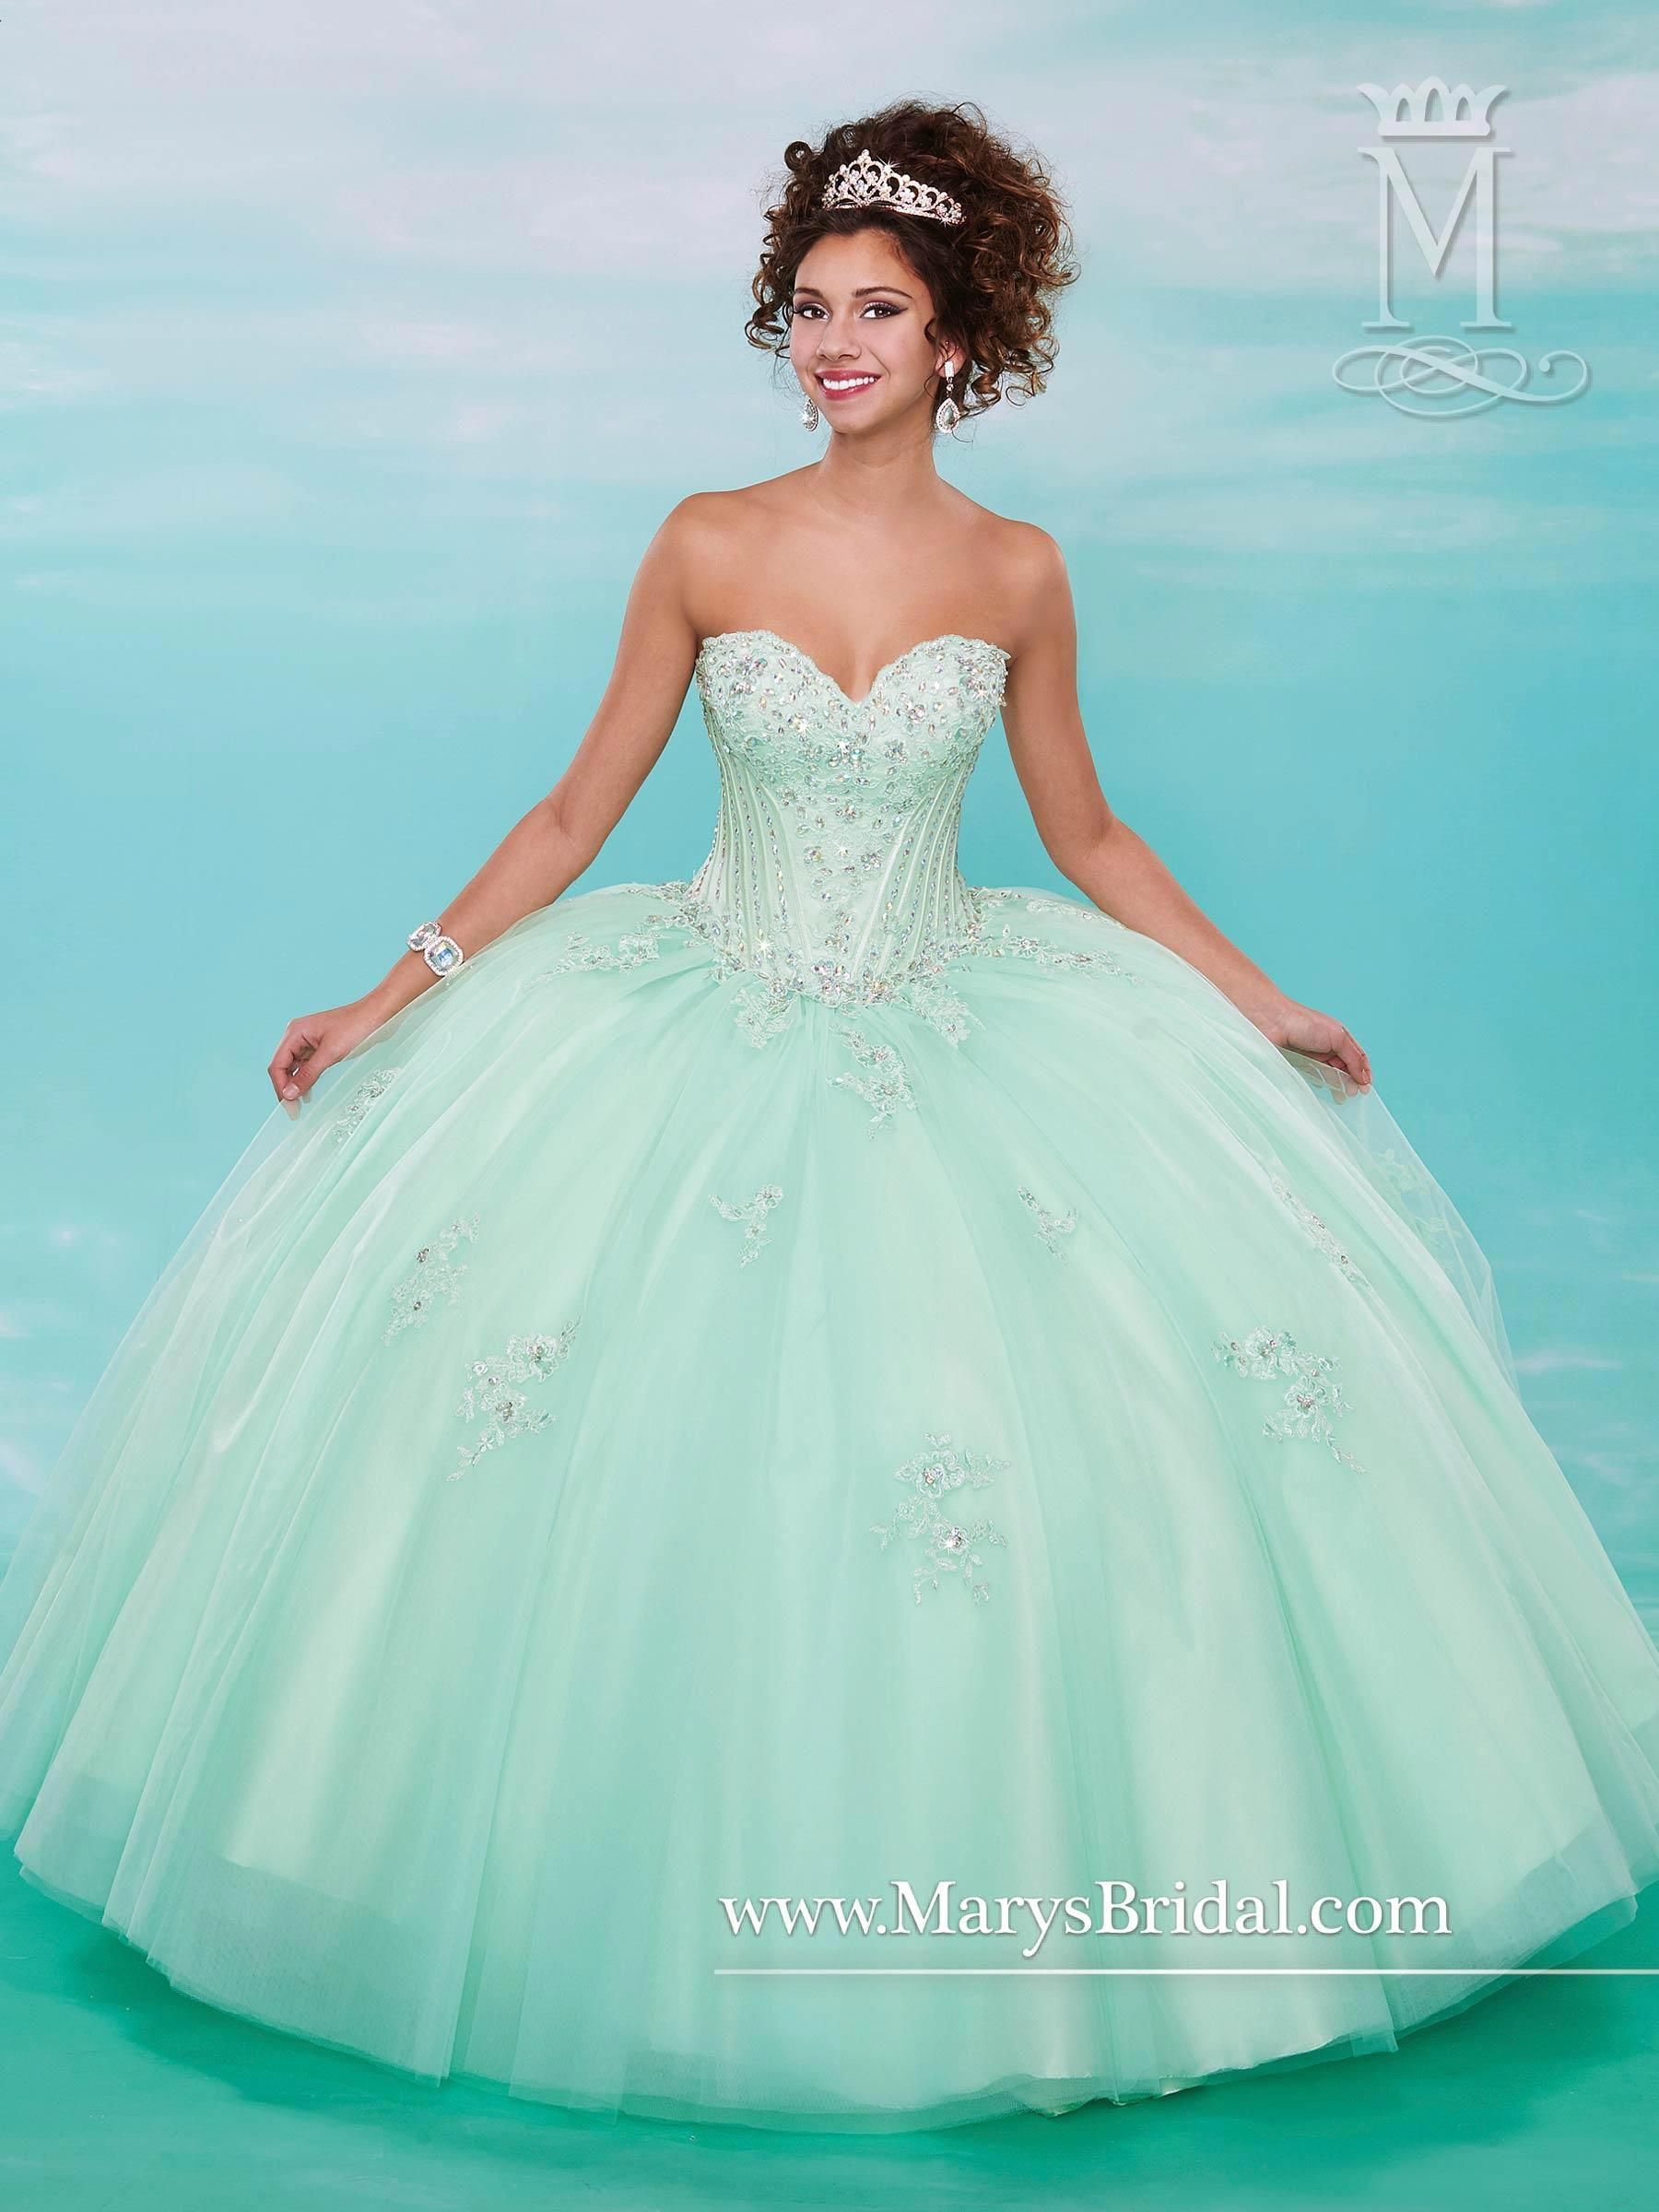 Mary s Mint Quinceanera Dresses 2015 Winter Sweetheart Beaded Crystals  Appliques Red Coral Tulle Ball Gown Sweet 15 Dresses with Jacket from ... 93d98eb854a5